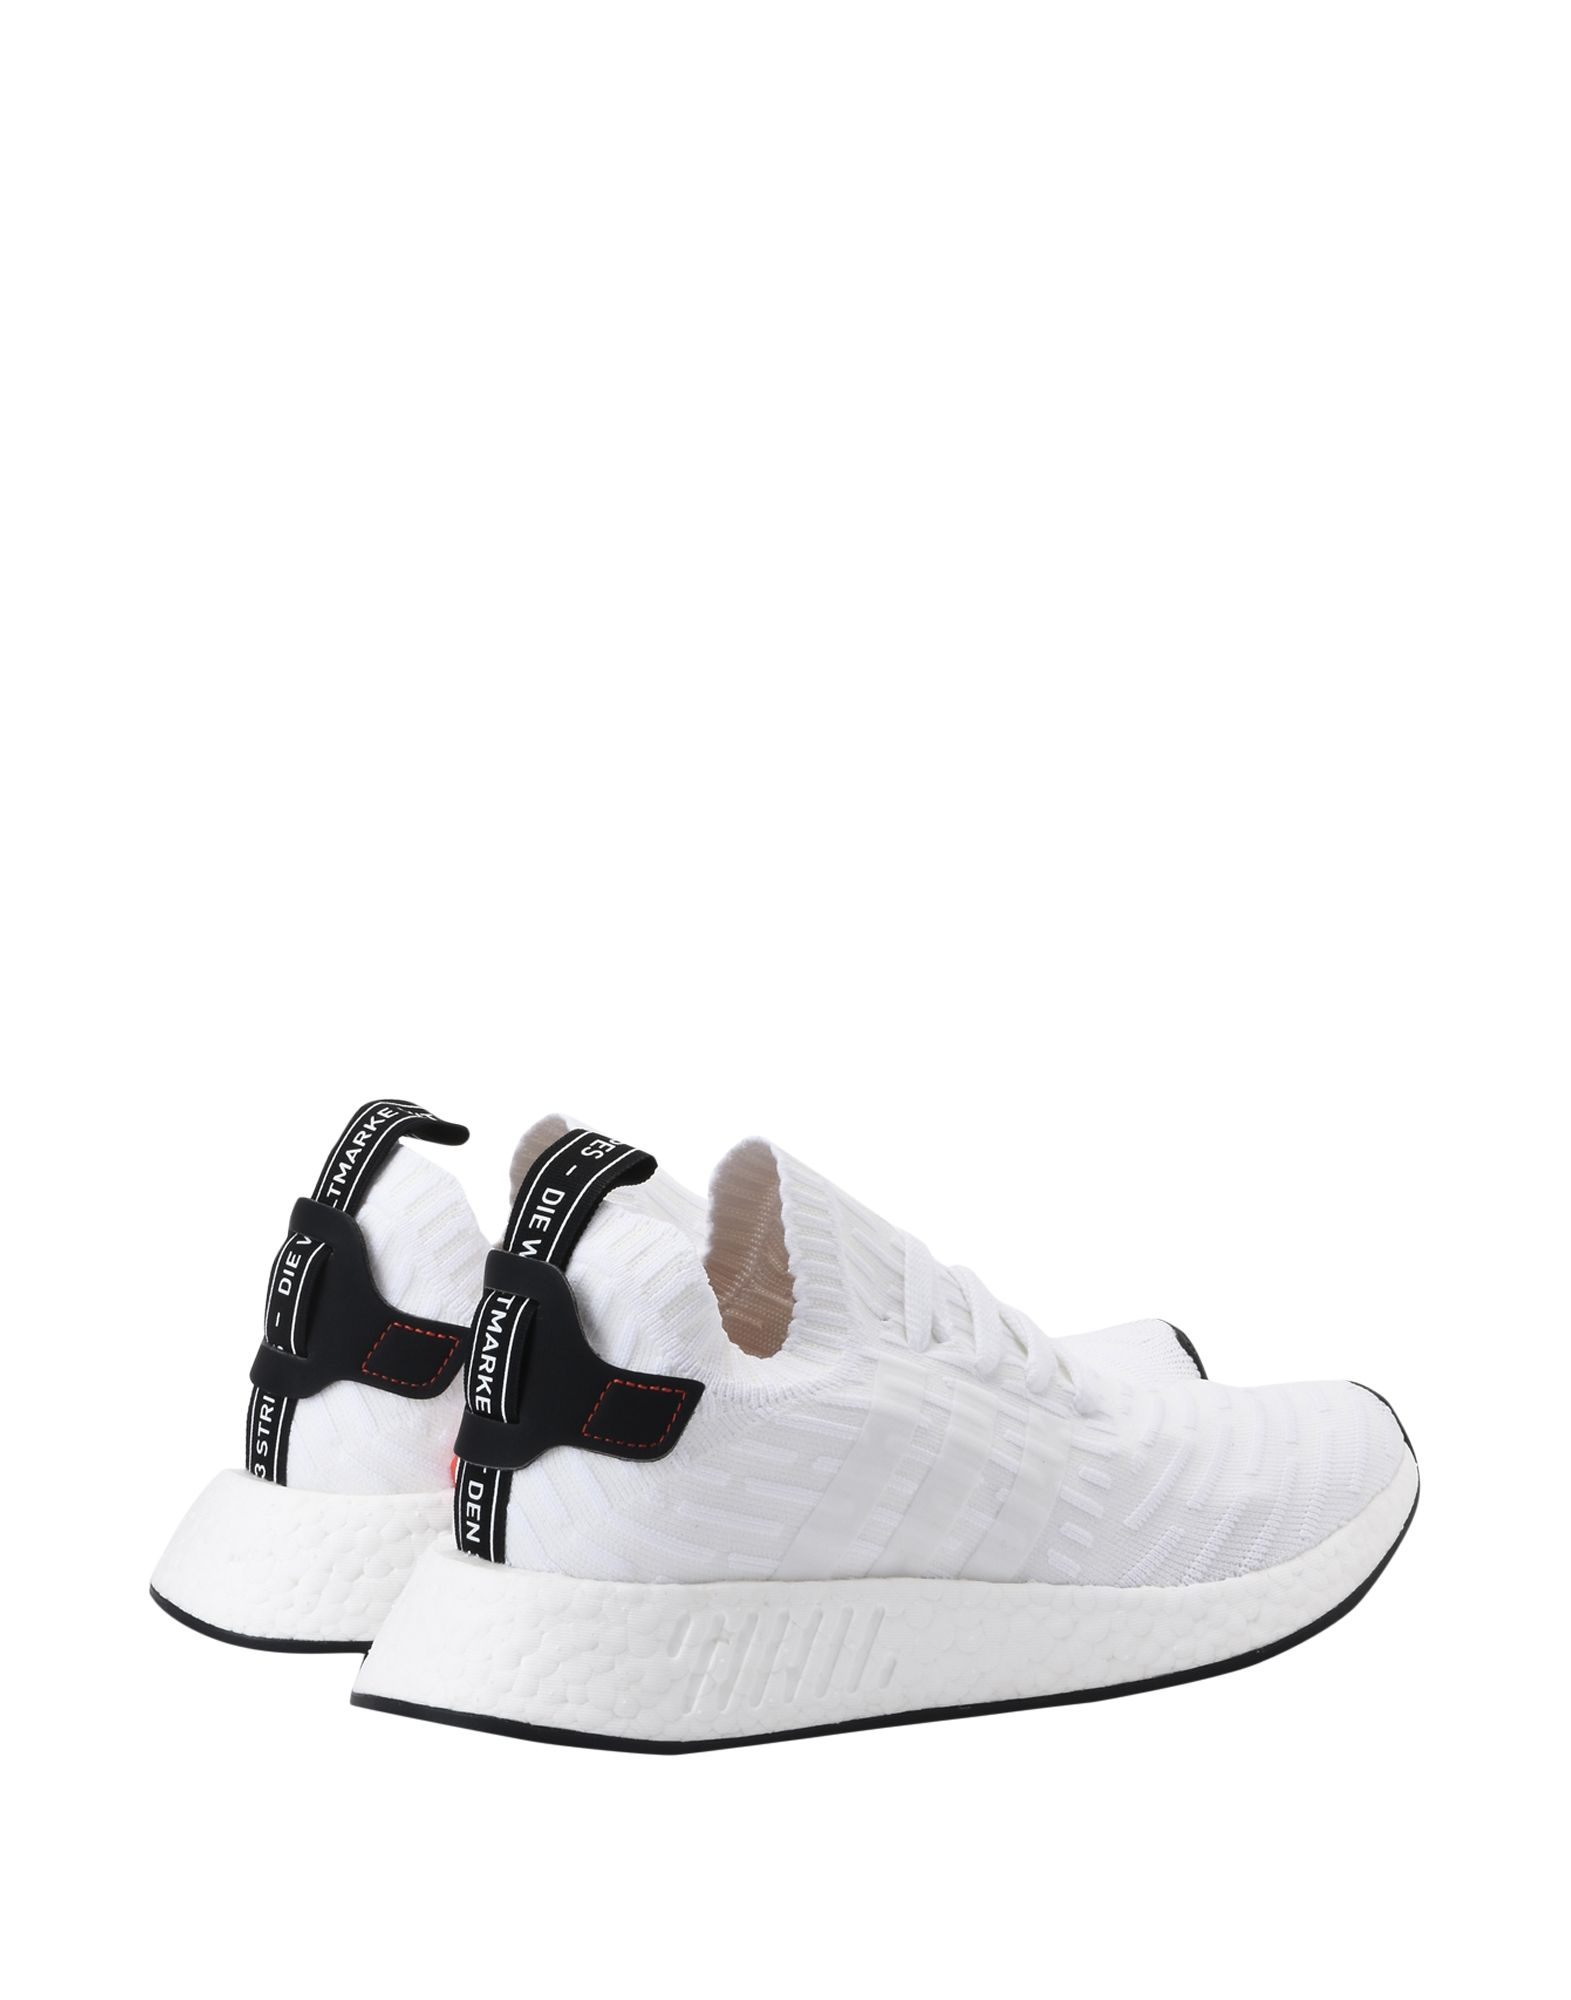 ... Sneakers Adidas Originals Nmd_R2 Pk - Femme - Sneakers Adidas Originals  sur ...